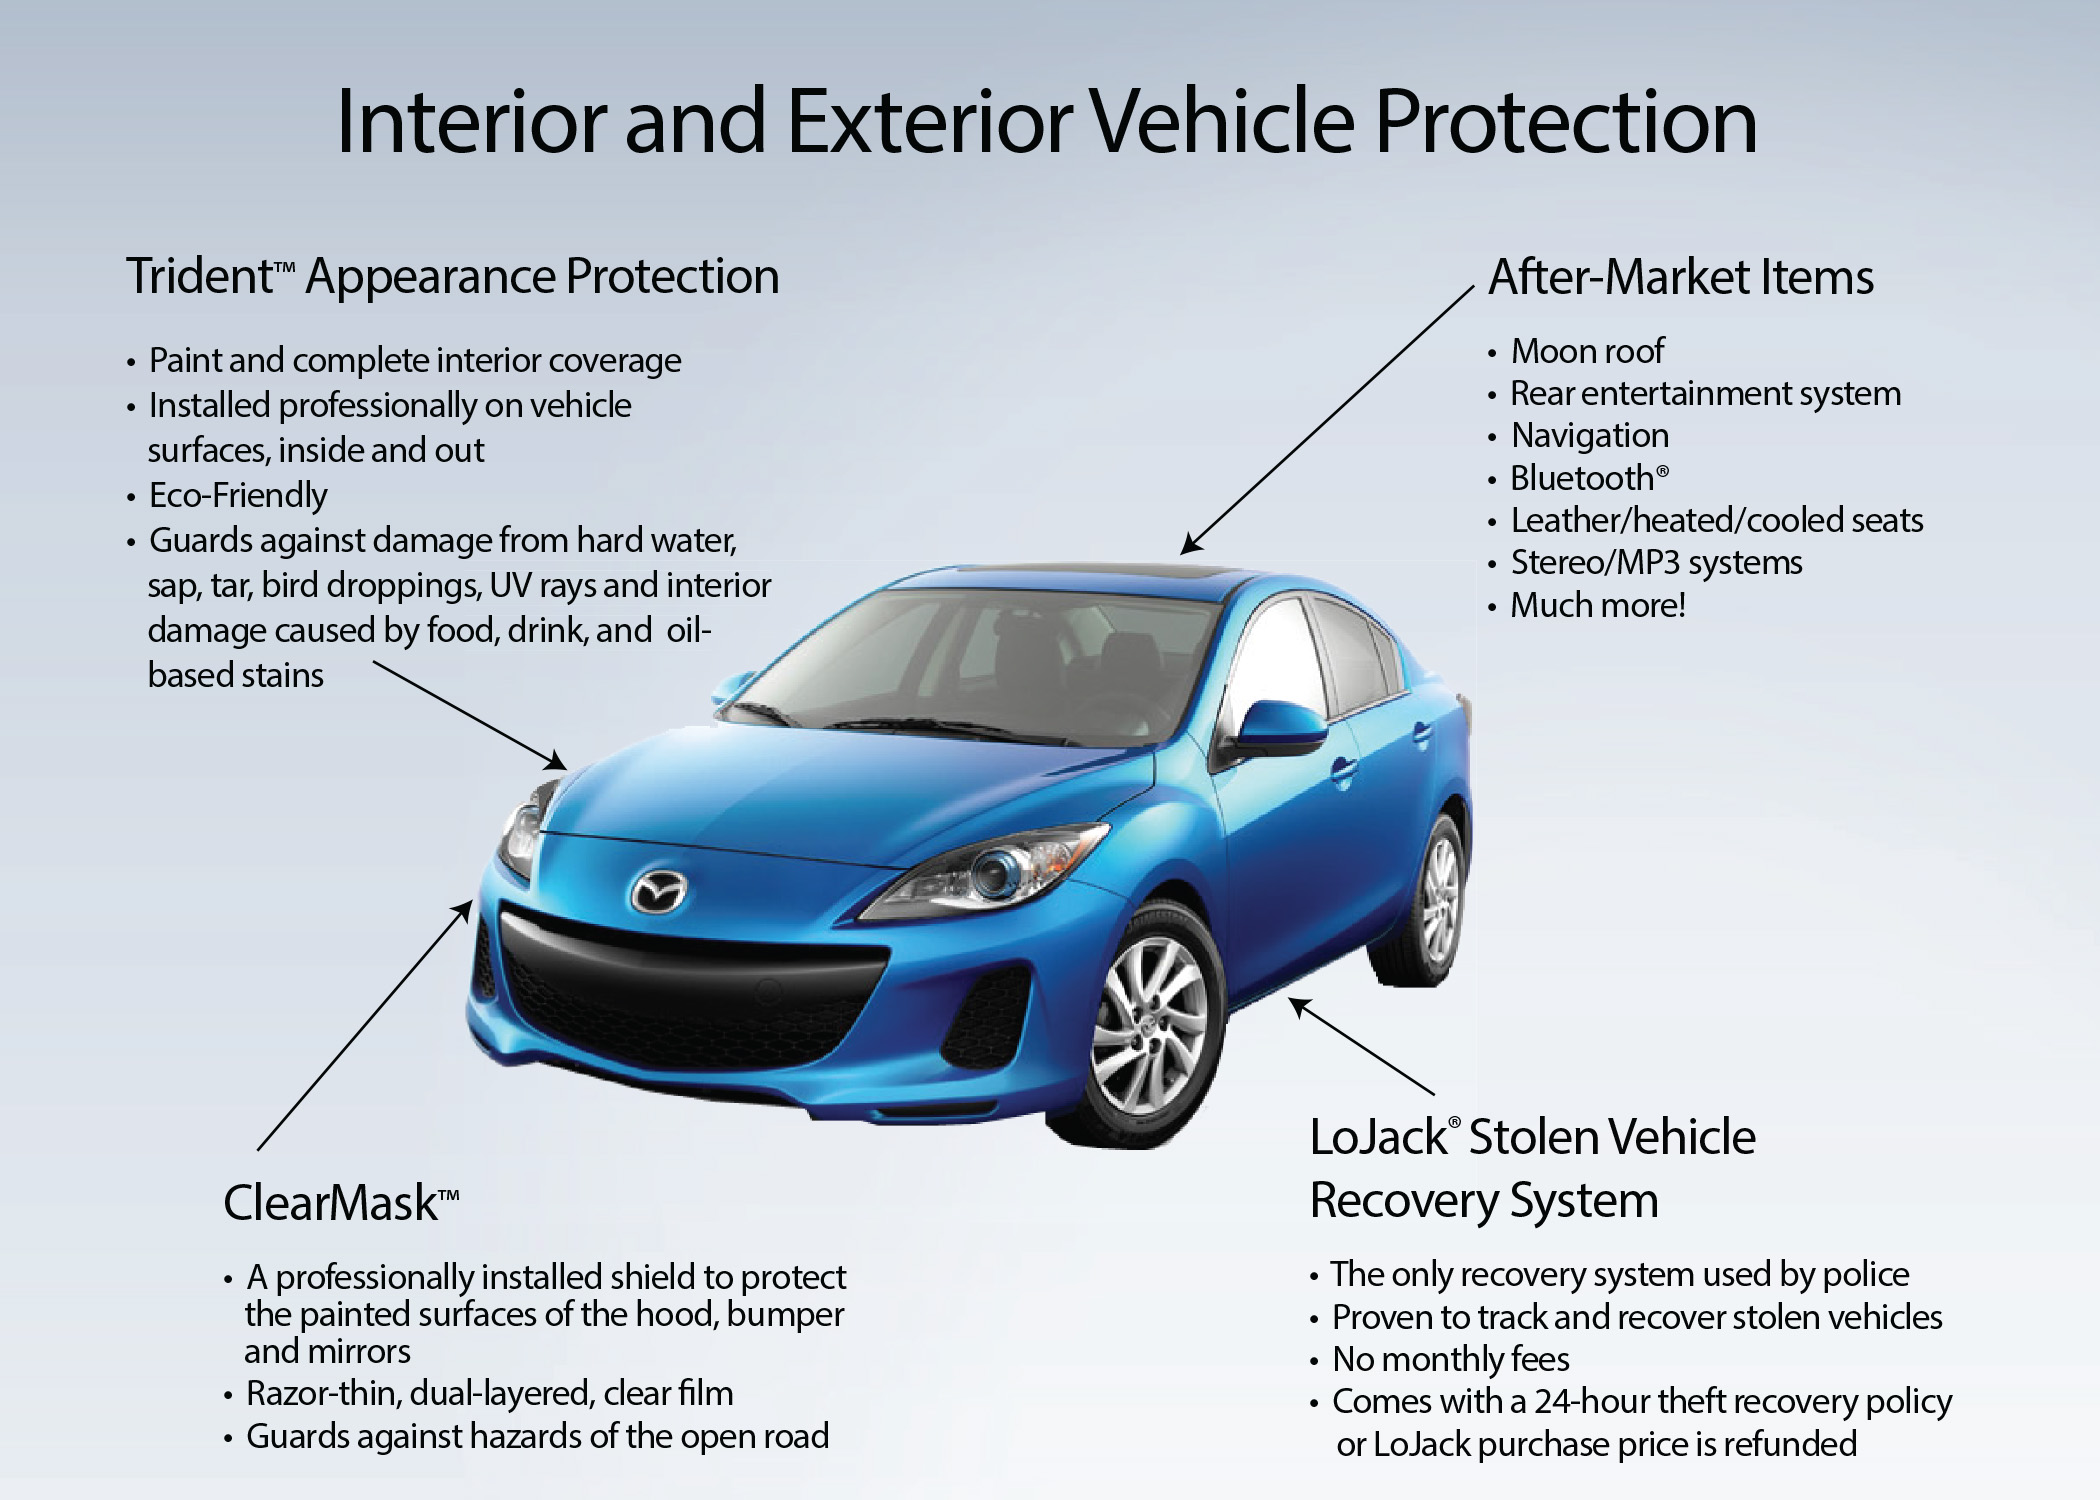 Interior and exterior vehicle protection